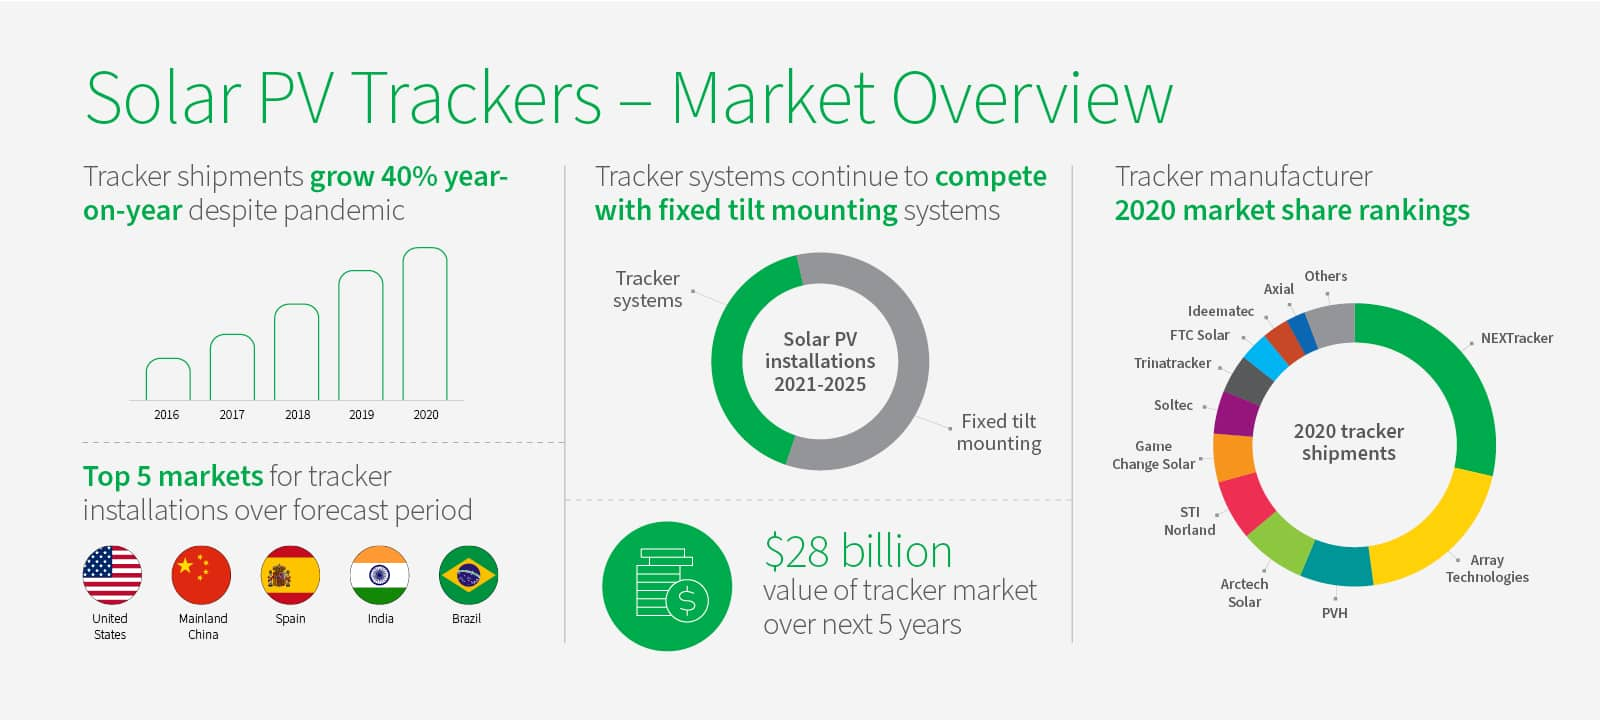 Solar PV Tackers - Market Overview